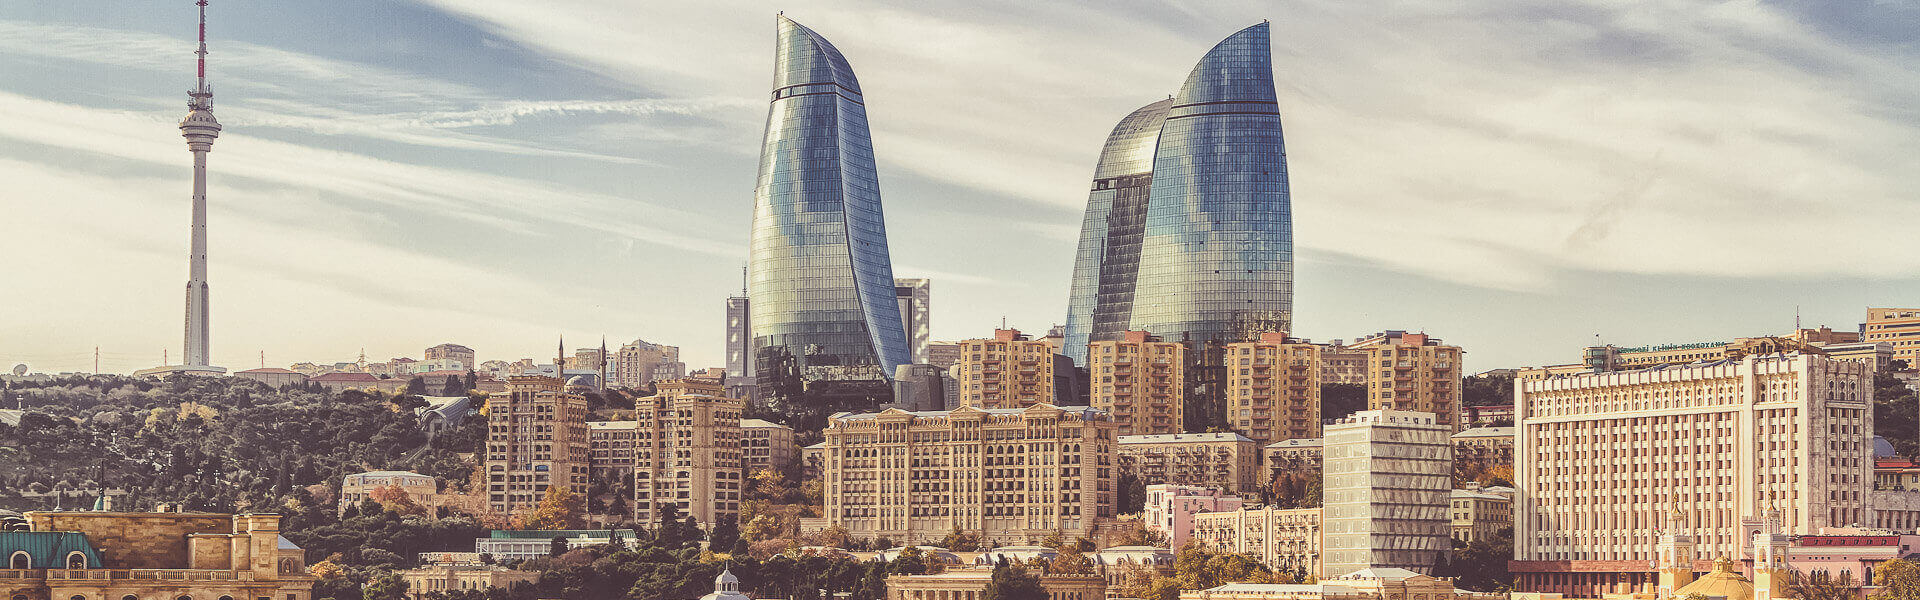 /images/TourTrip/tours/caucasus/14-days-roadtrip/itinerary/baku-azerbaijan-01.jpg